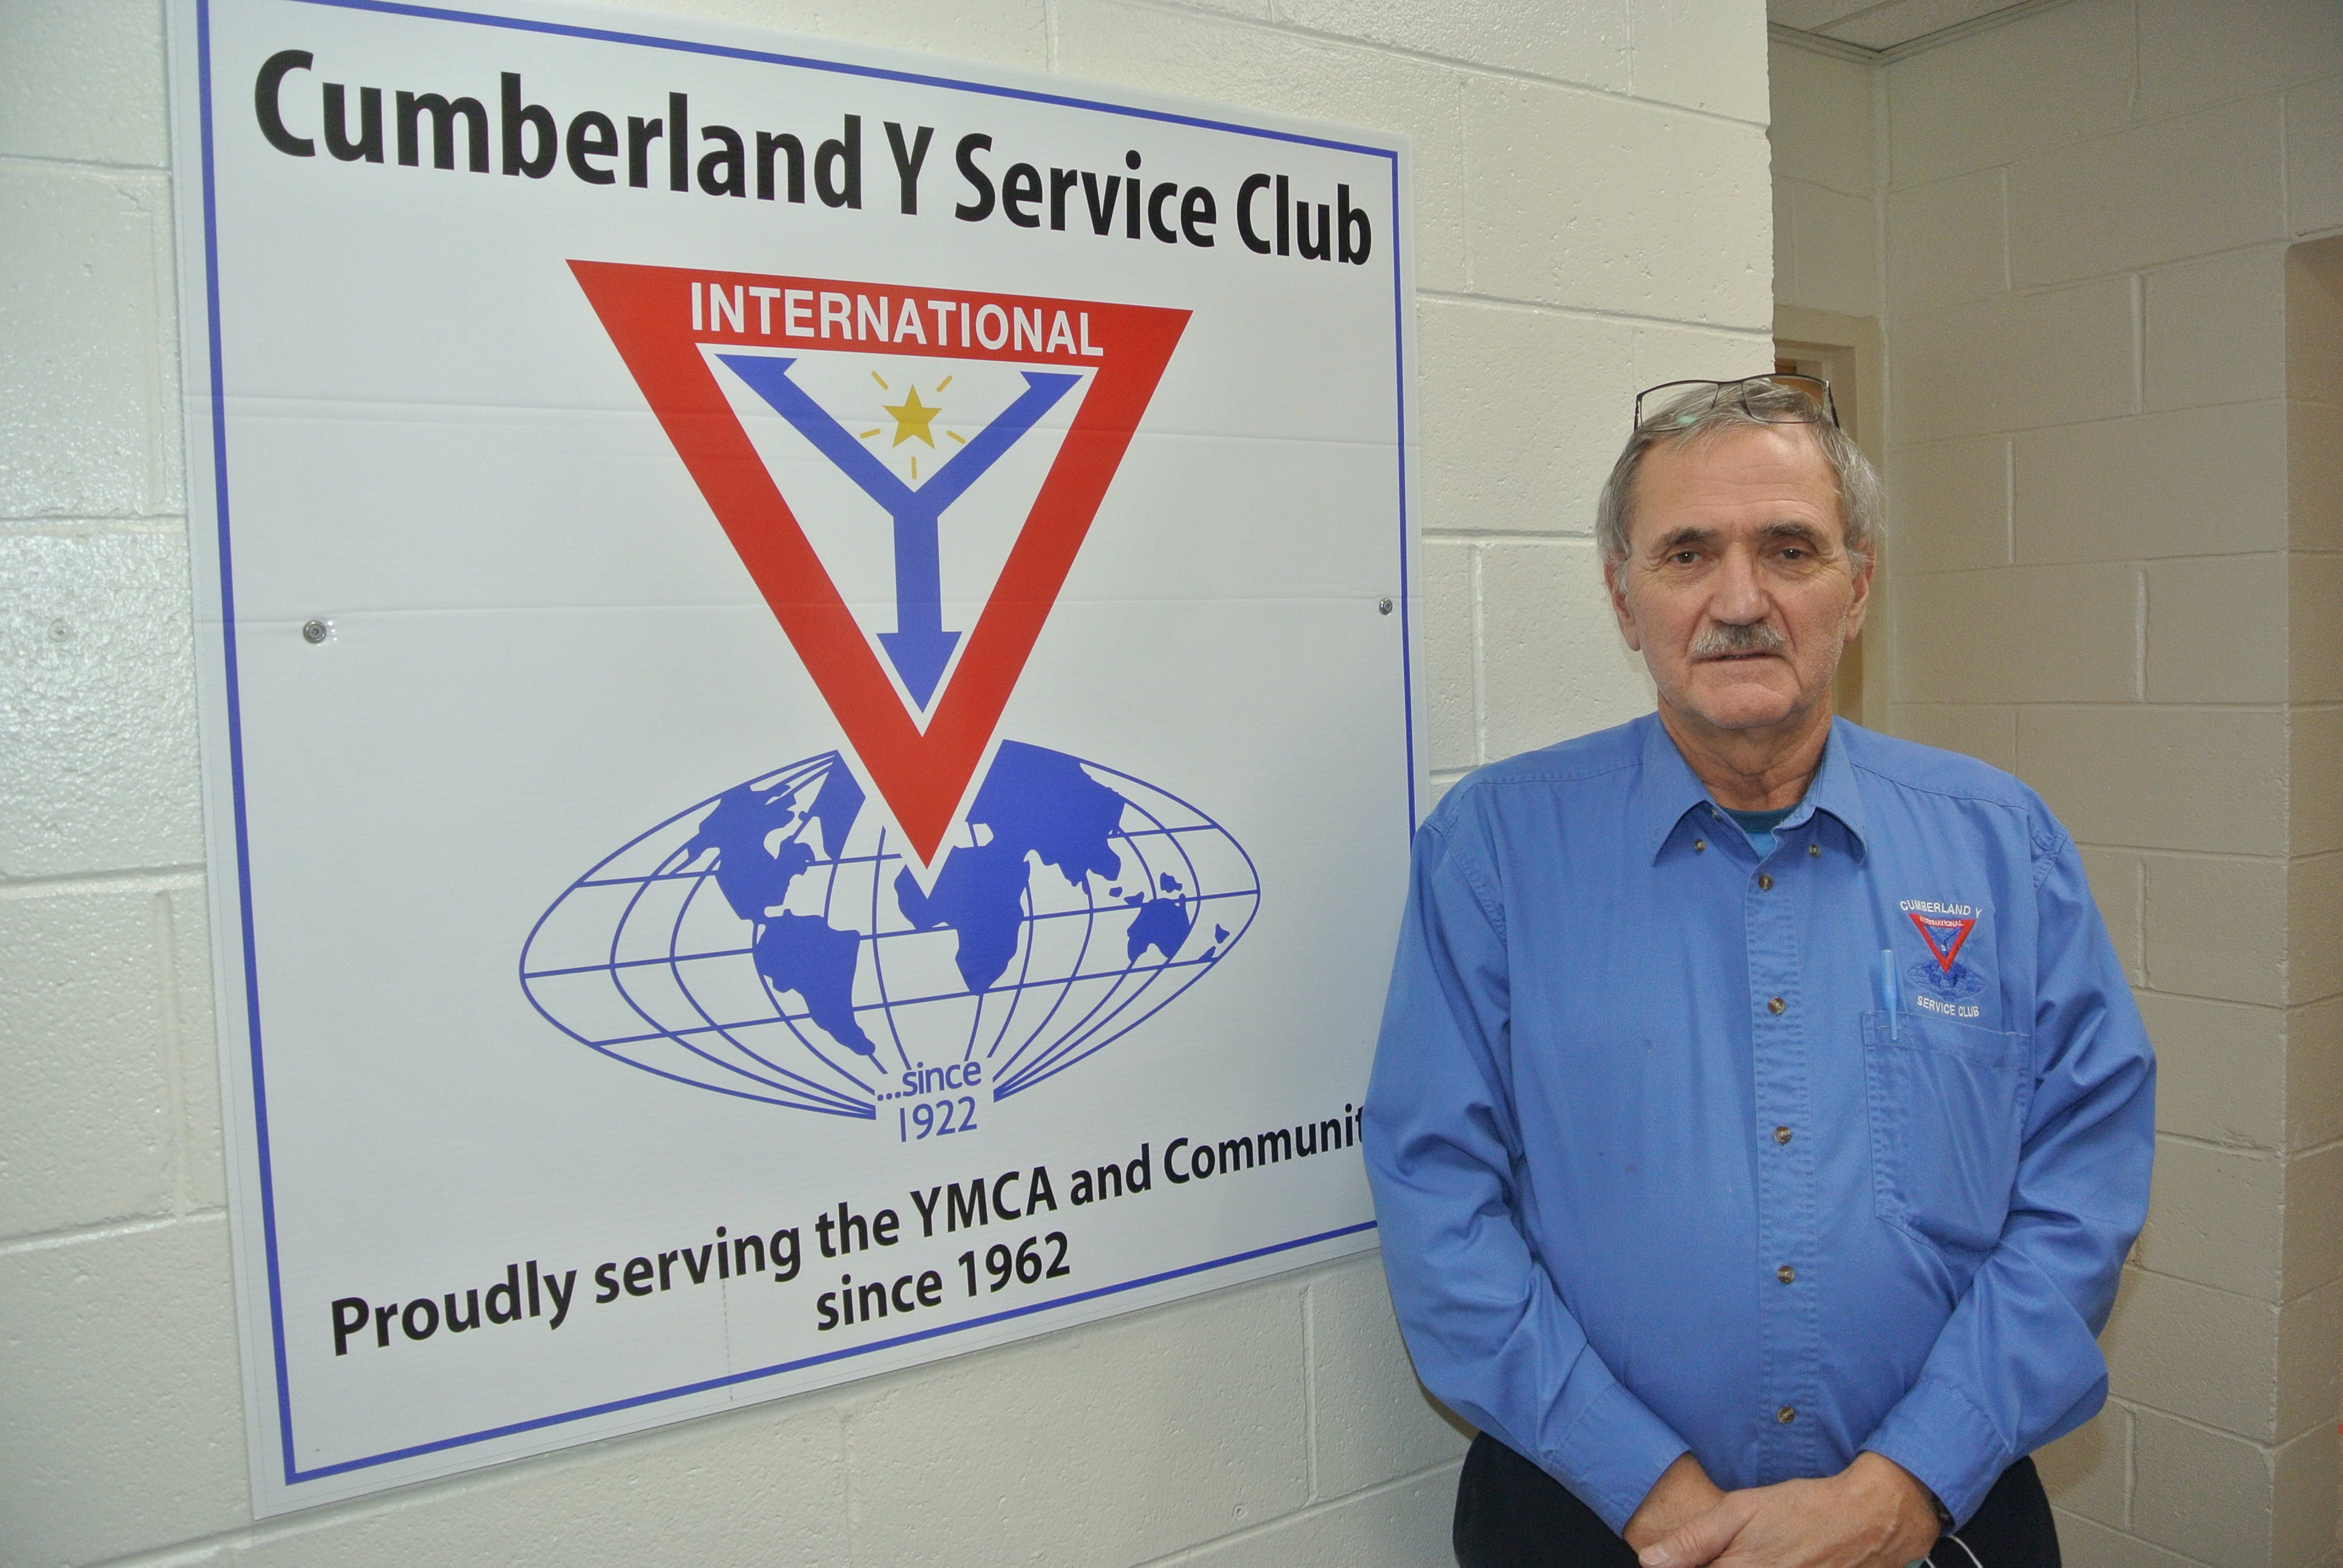 Kent Leslie has been a member of the Cumberland Y Service Club since 1986. He was honoured with a Golden Book Tribute for his work with the club and community in 2016 while last year he was presented the Purdy Cougle Memorial Award as the Maritime Y's Man of the Year. Darrell Cole - Cumberland Wire